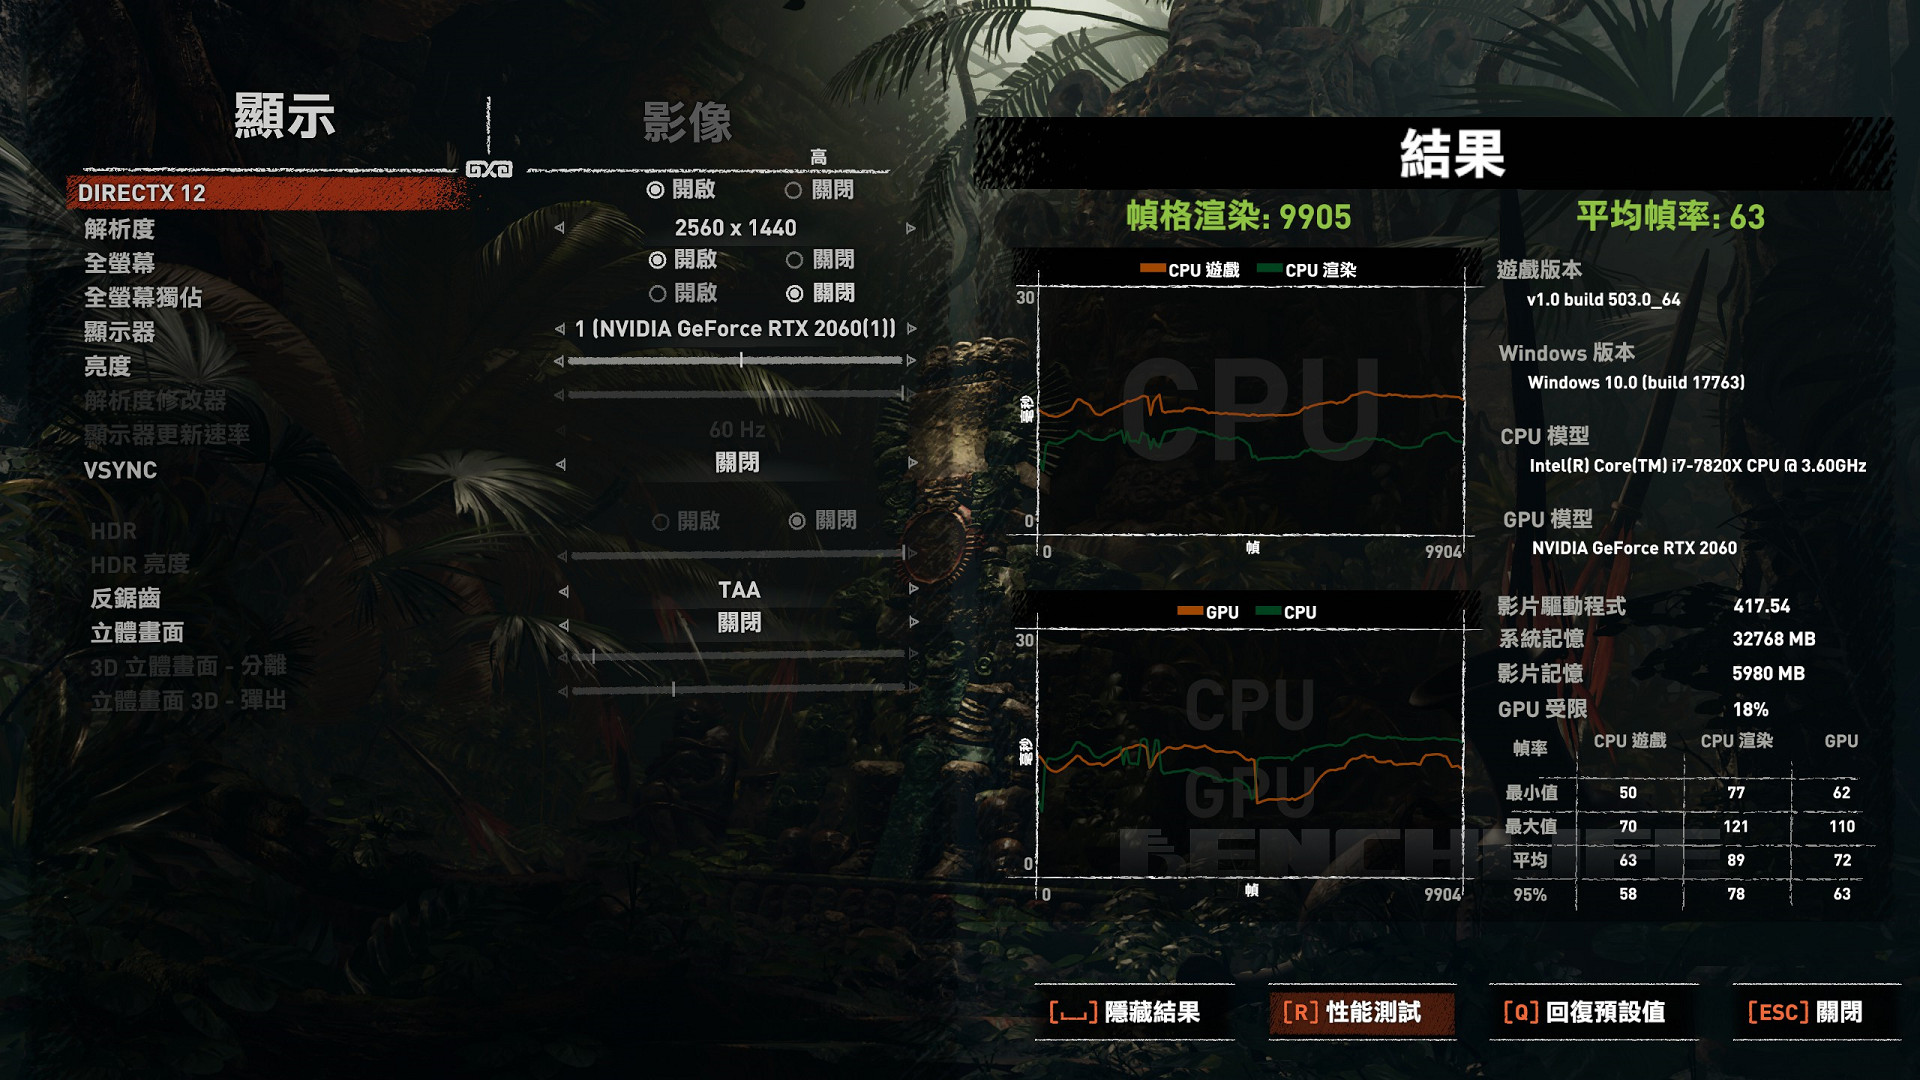 ASUS ROG Strix GeForce RTX 2060 OC - Benchmark (6)